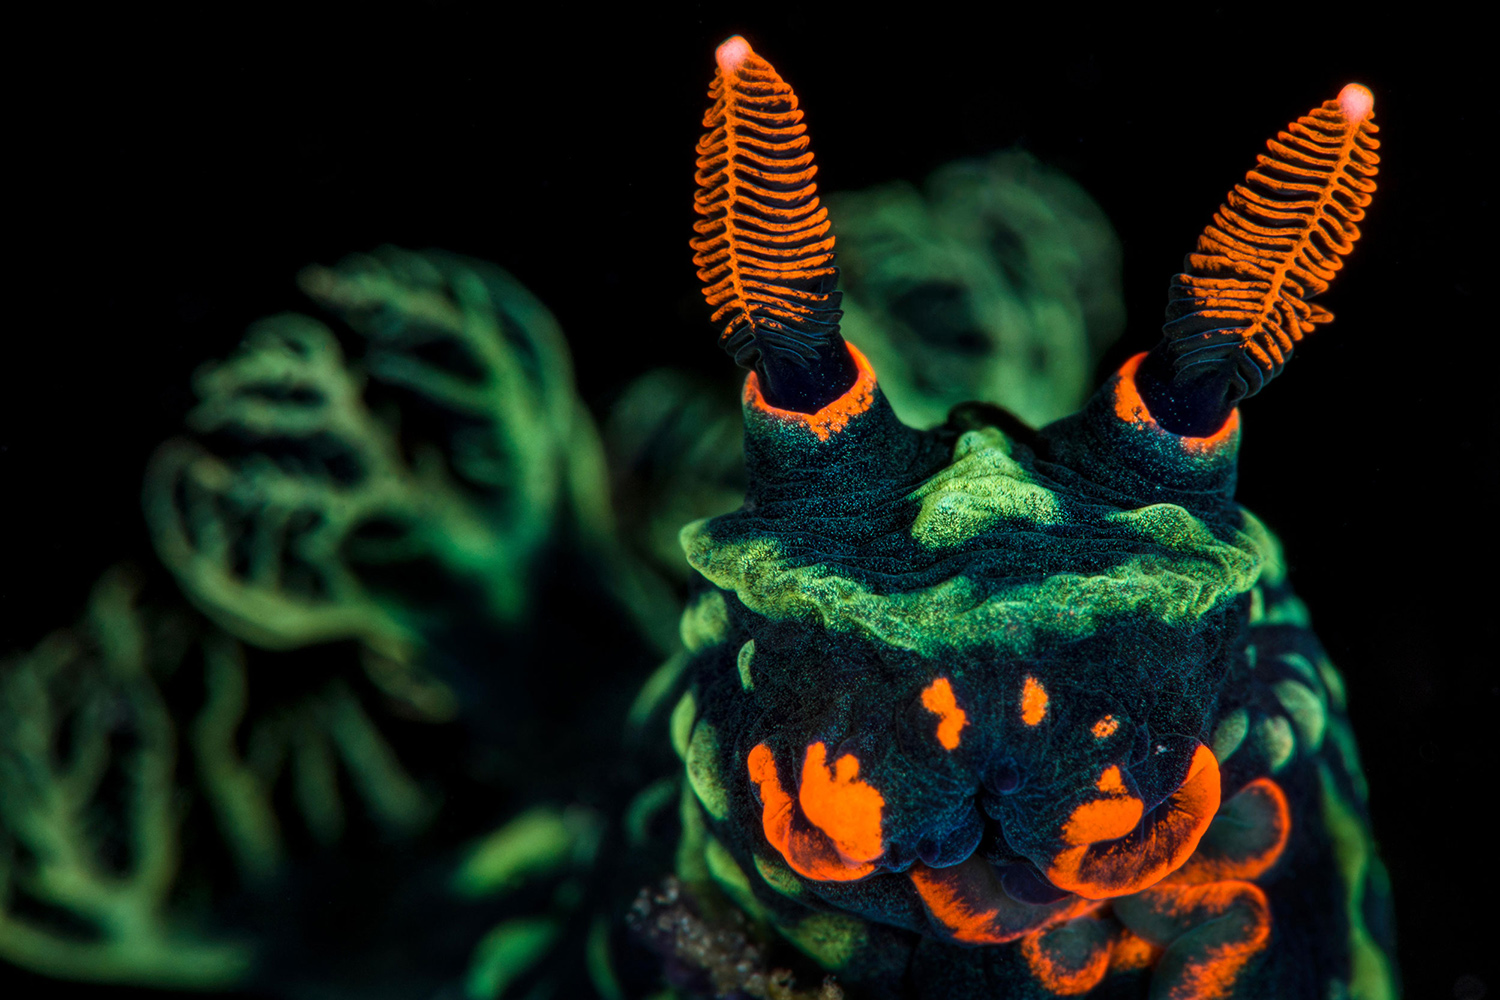 Nudibranch, Nembrotha Kubaryana from Indonesia - showing orange mouth parts and sensory rhinophores, and green gills. High magnification photo by Lembeh Strait.